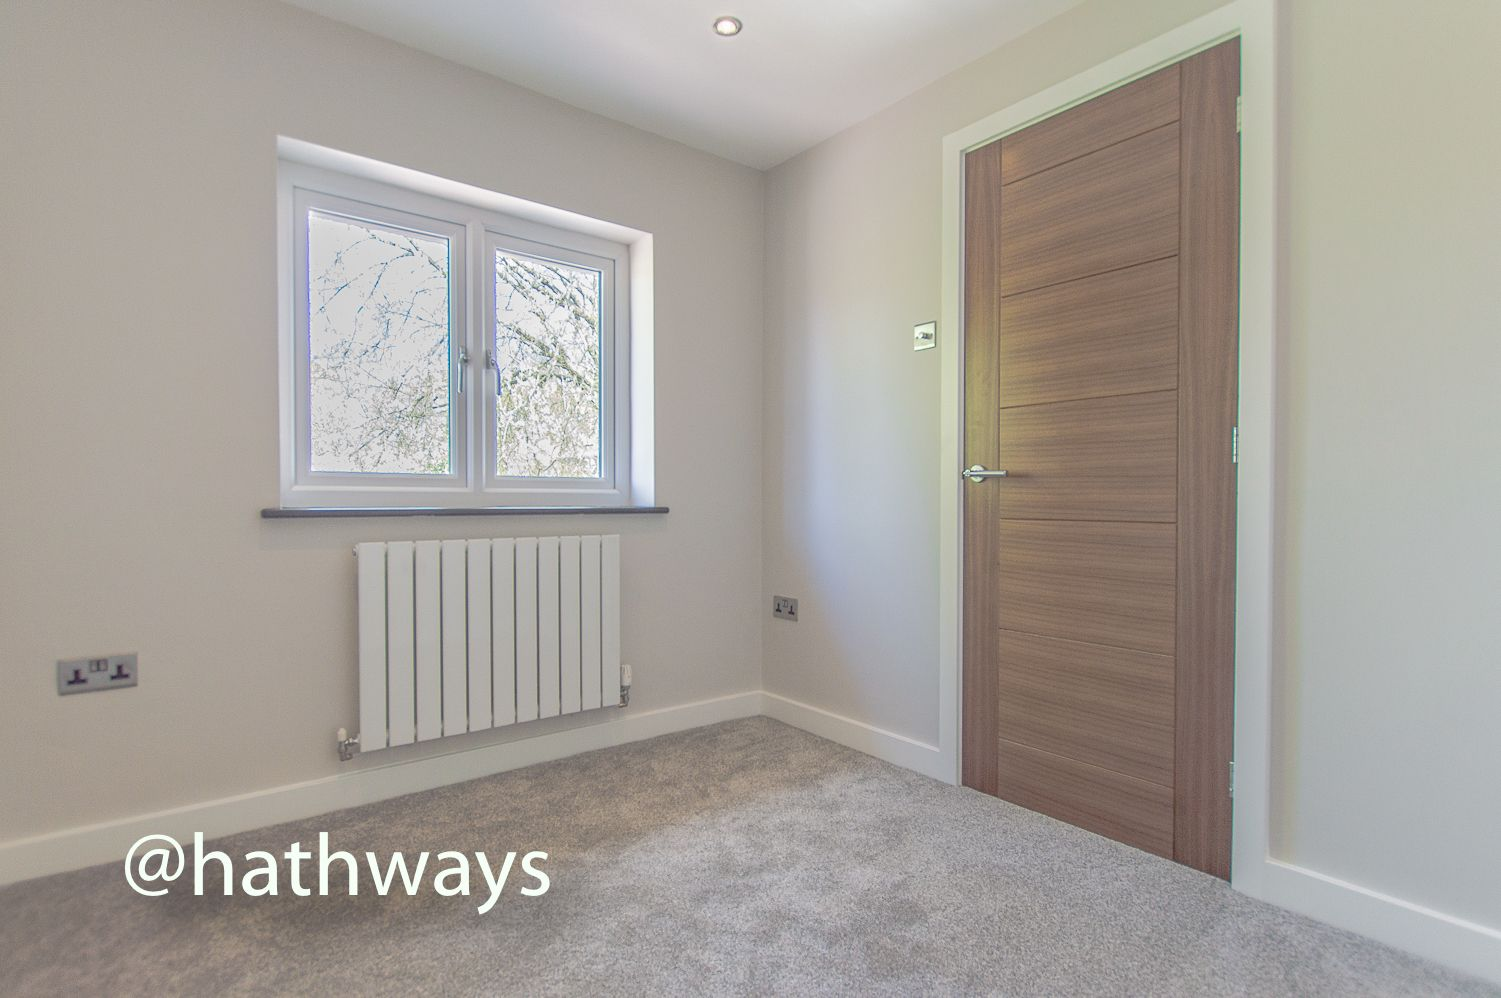 3 bed house for sale in Garw Wood Drive  - Property Image 48